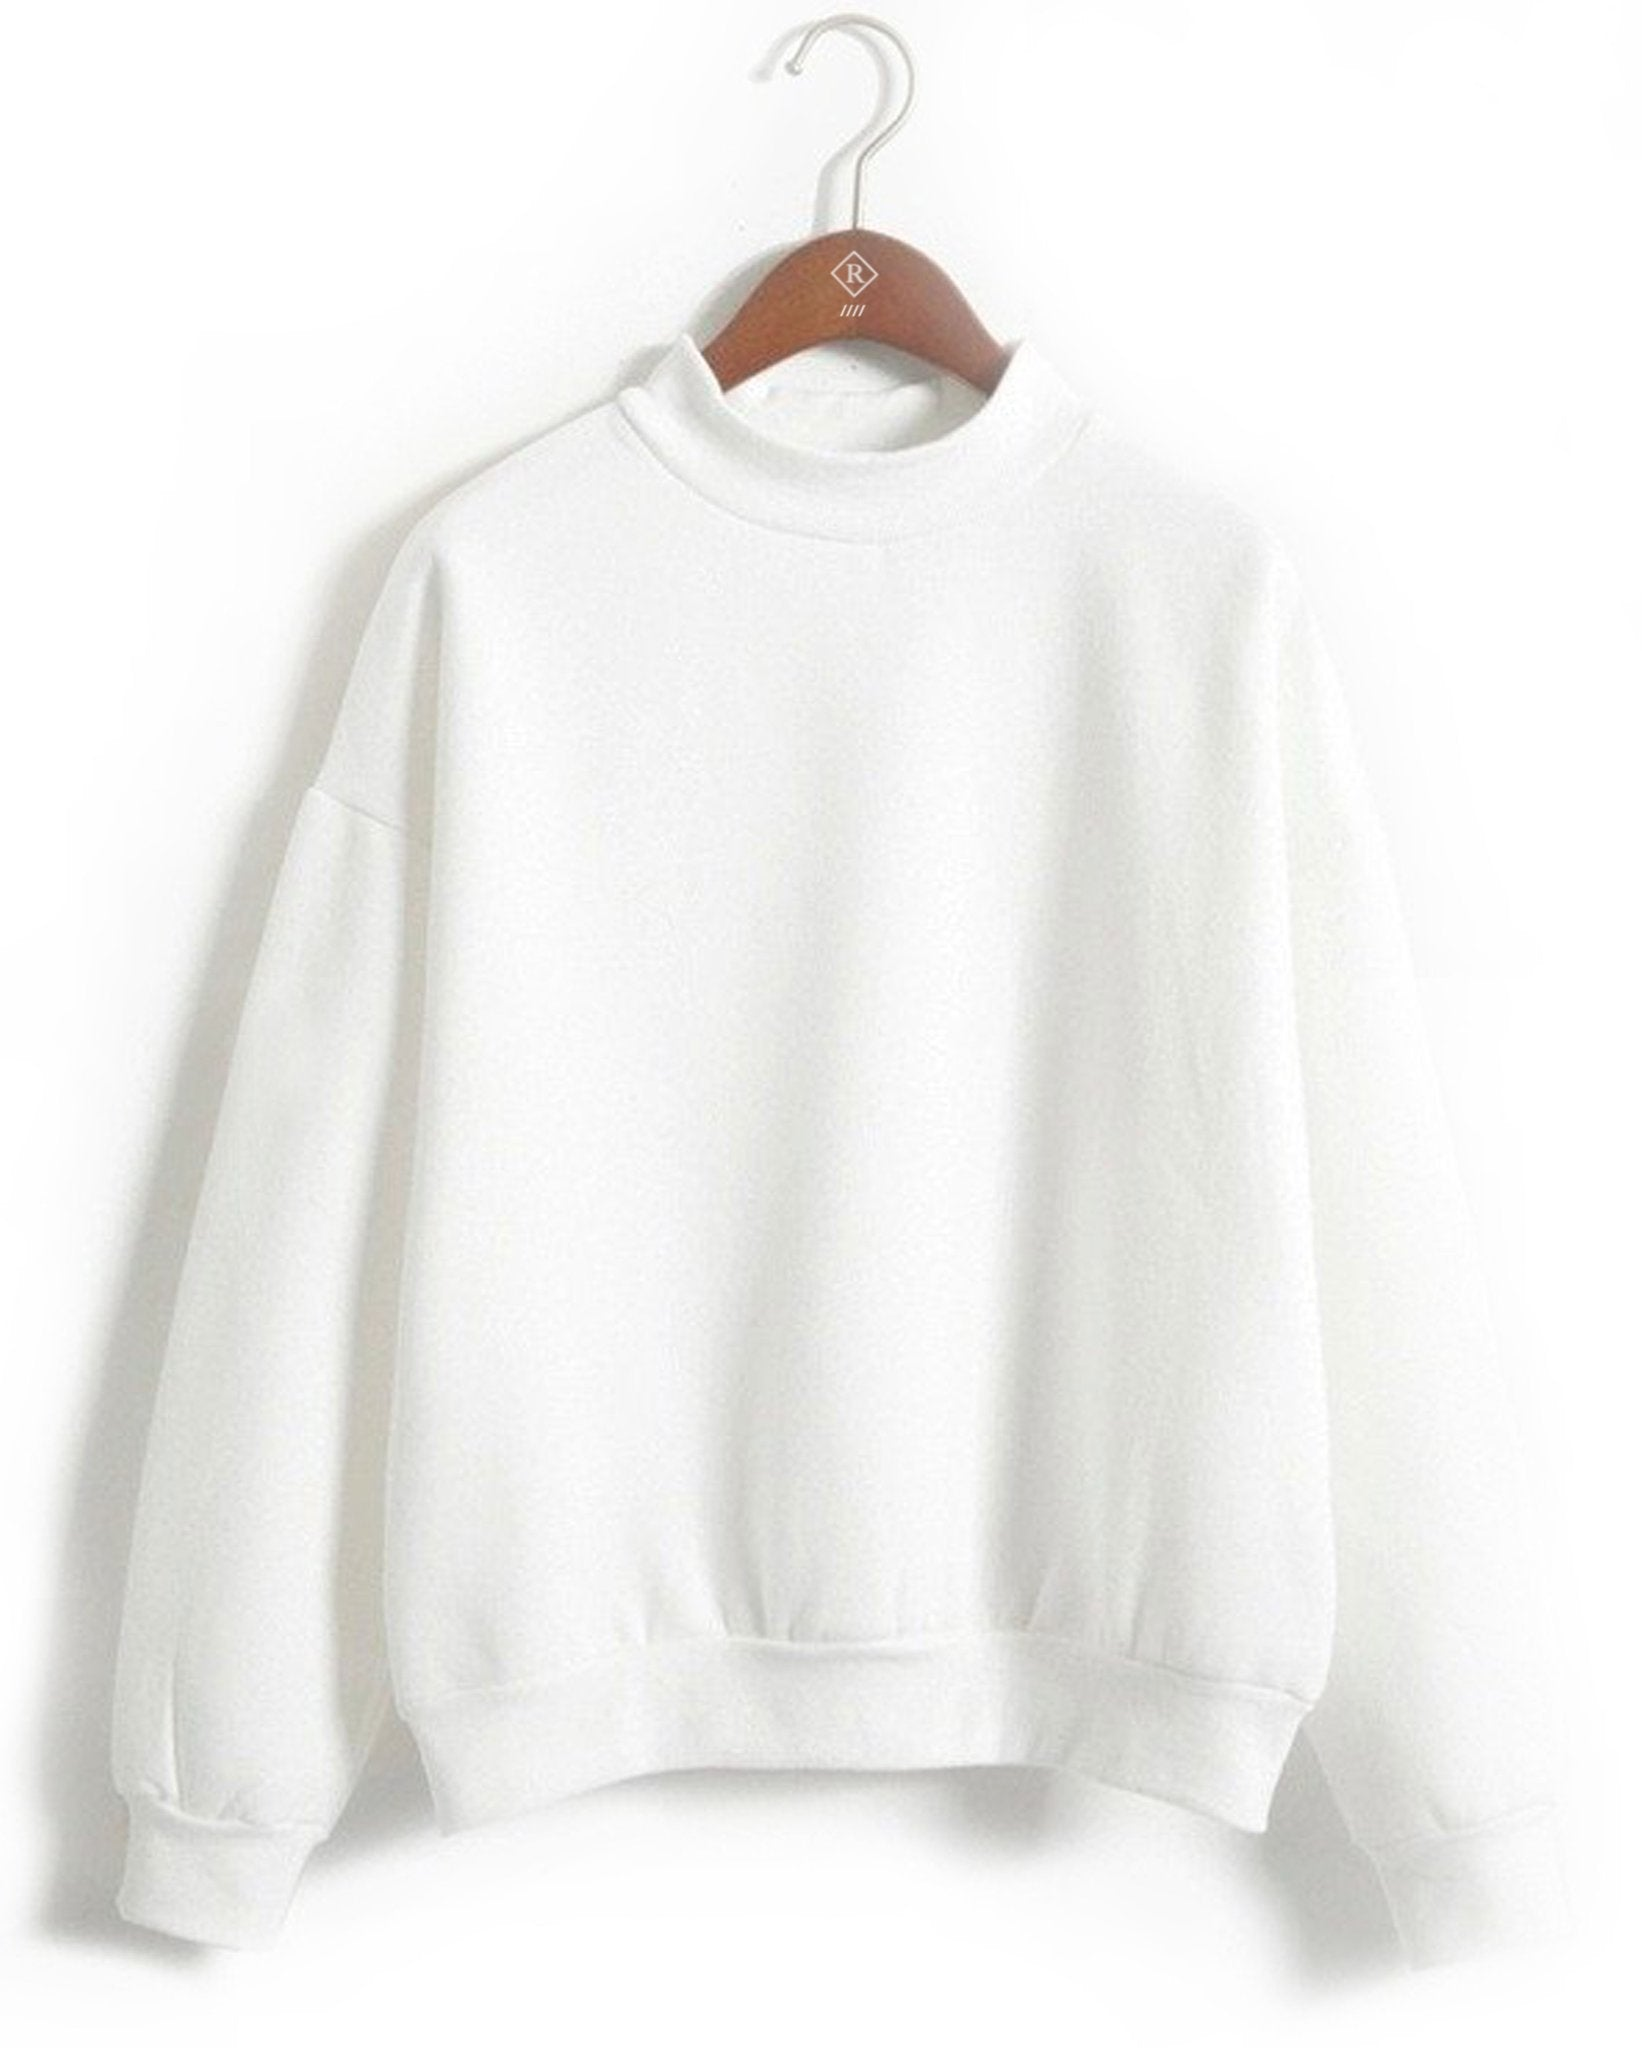 essentials plain white sweatshirt